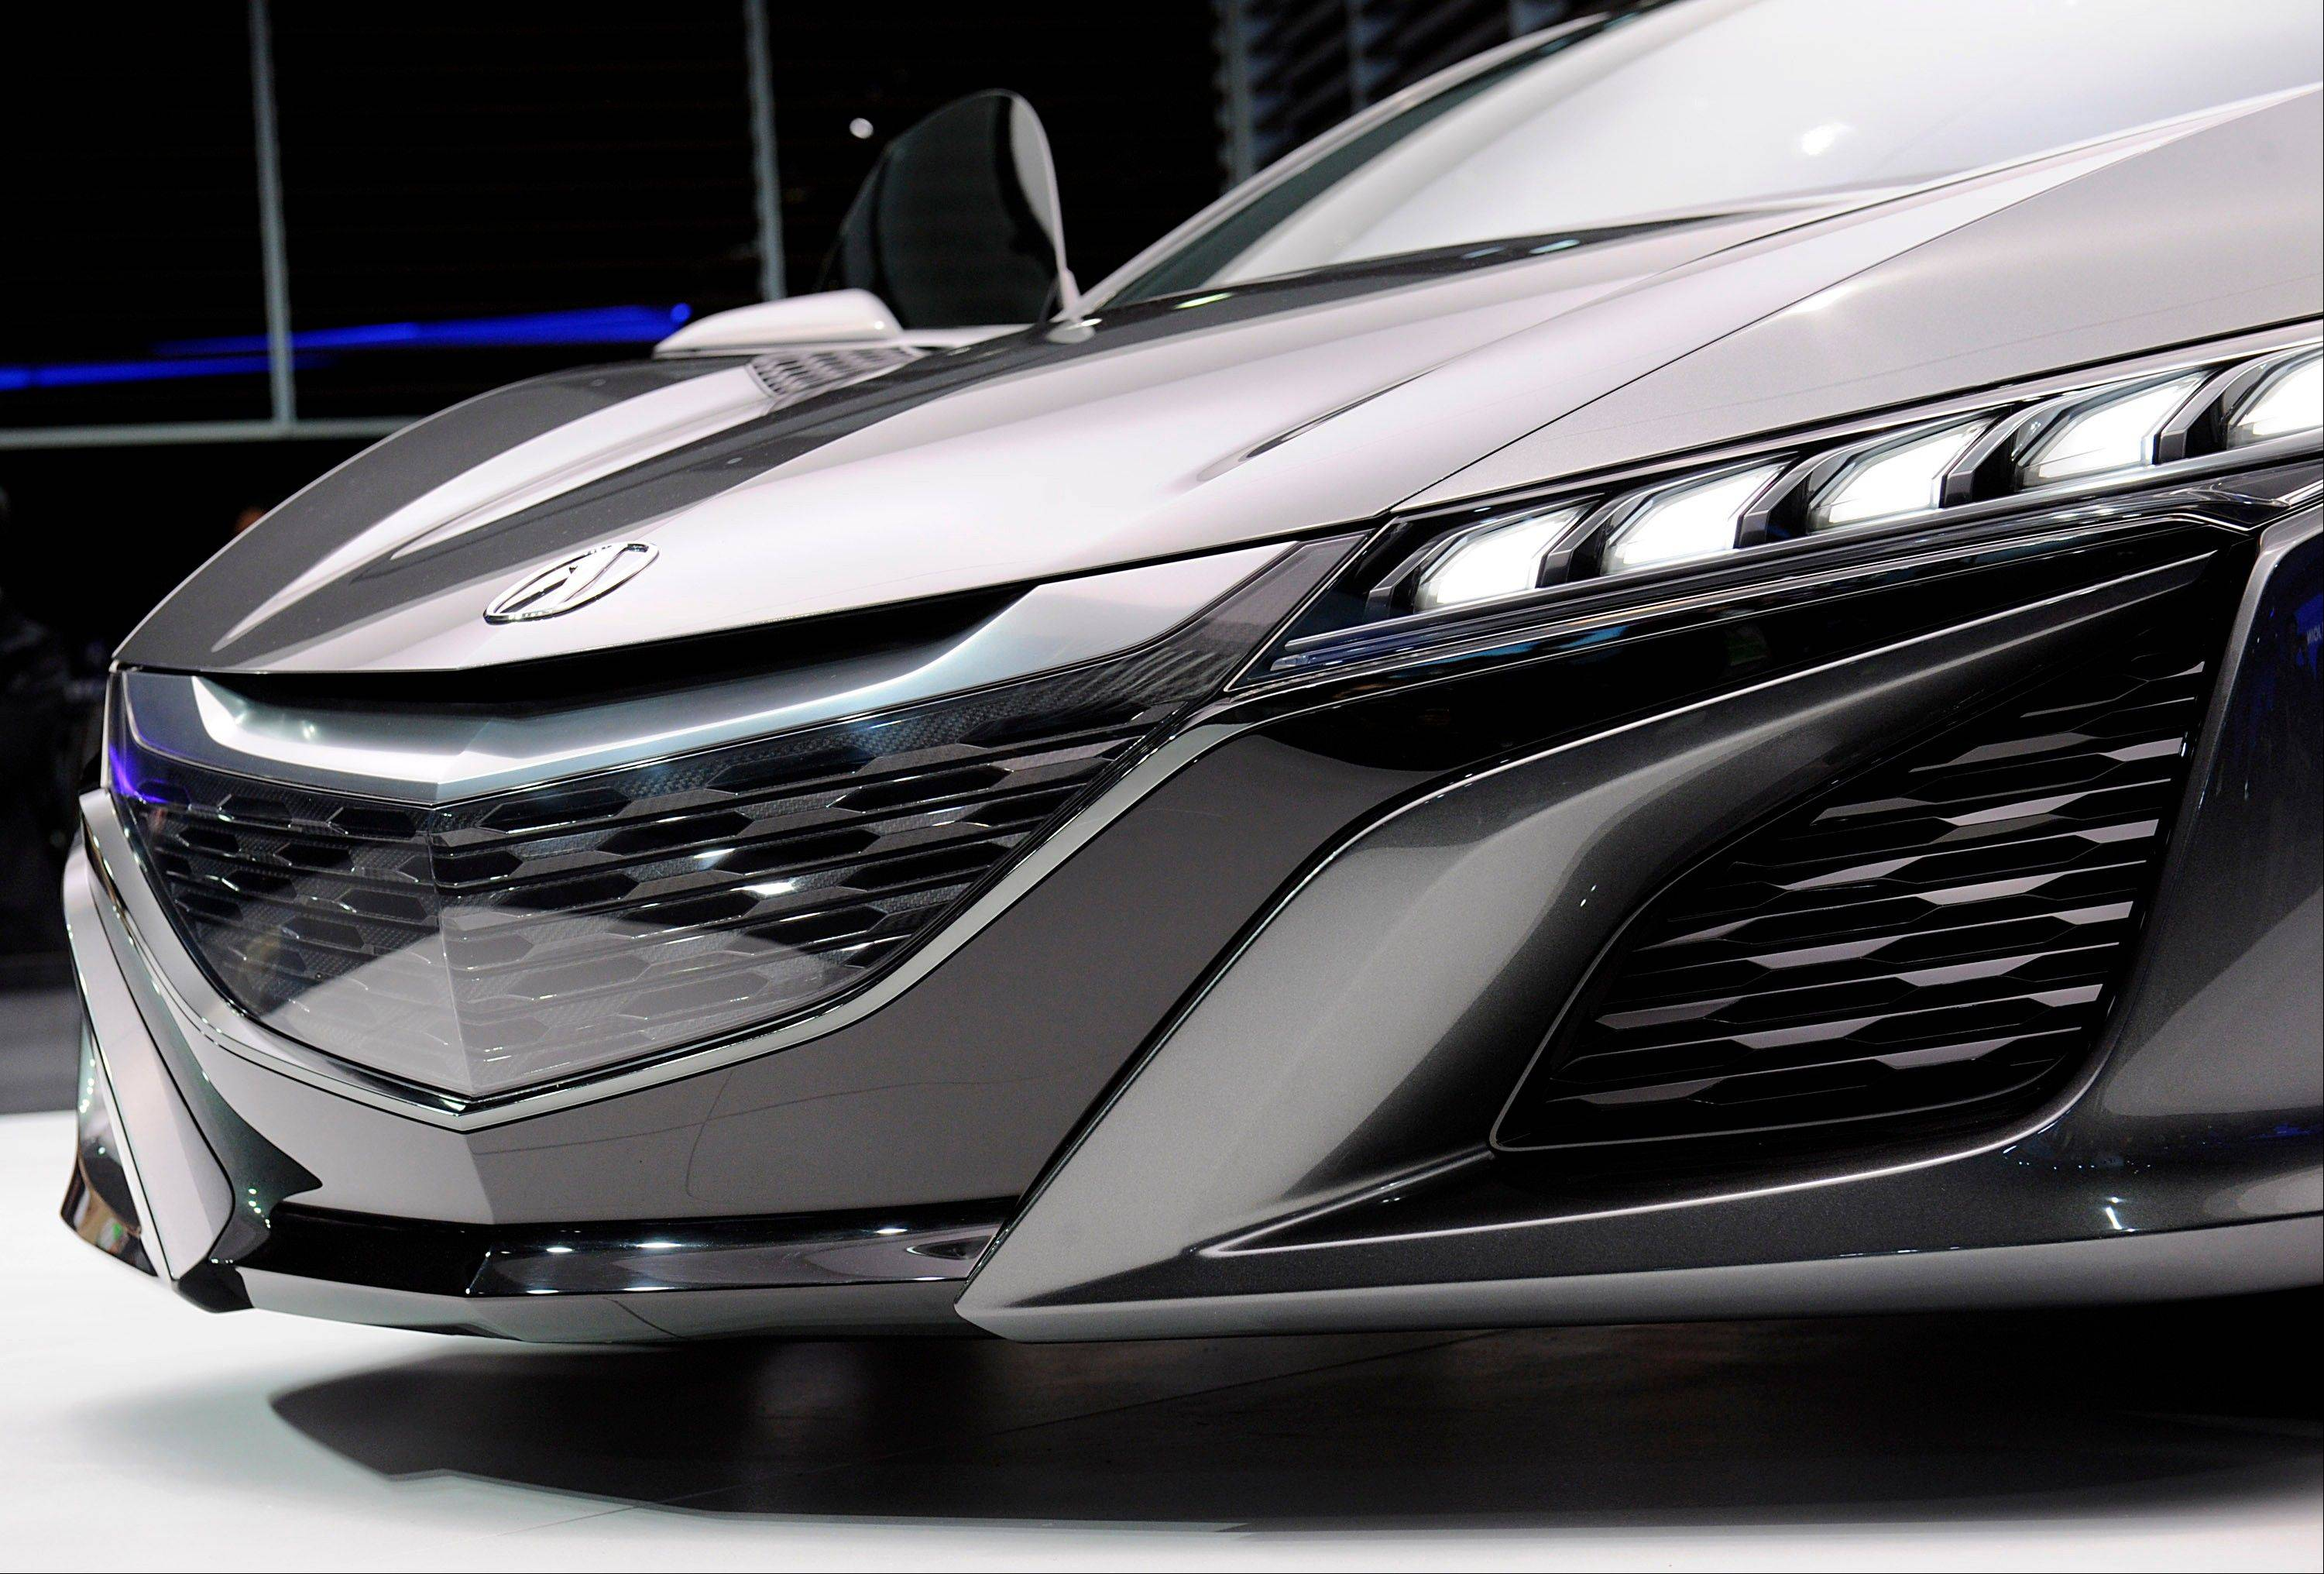 The Honda Motor Co. 2015 Acura NSX concept vehicle is displayed during the 2013 North American International Auto Show (NAIAS) in Detroit, Michigan, U.S., on Tuesday, Jan. 15, 2013. The Detroit auto show runs through Jan. 27 and will display over 500 vehicles, representing the most innovative designs in the world.